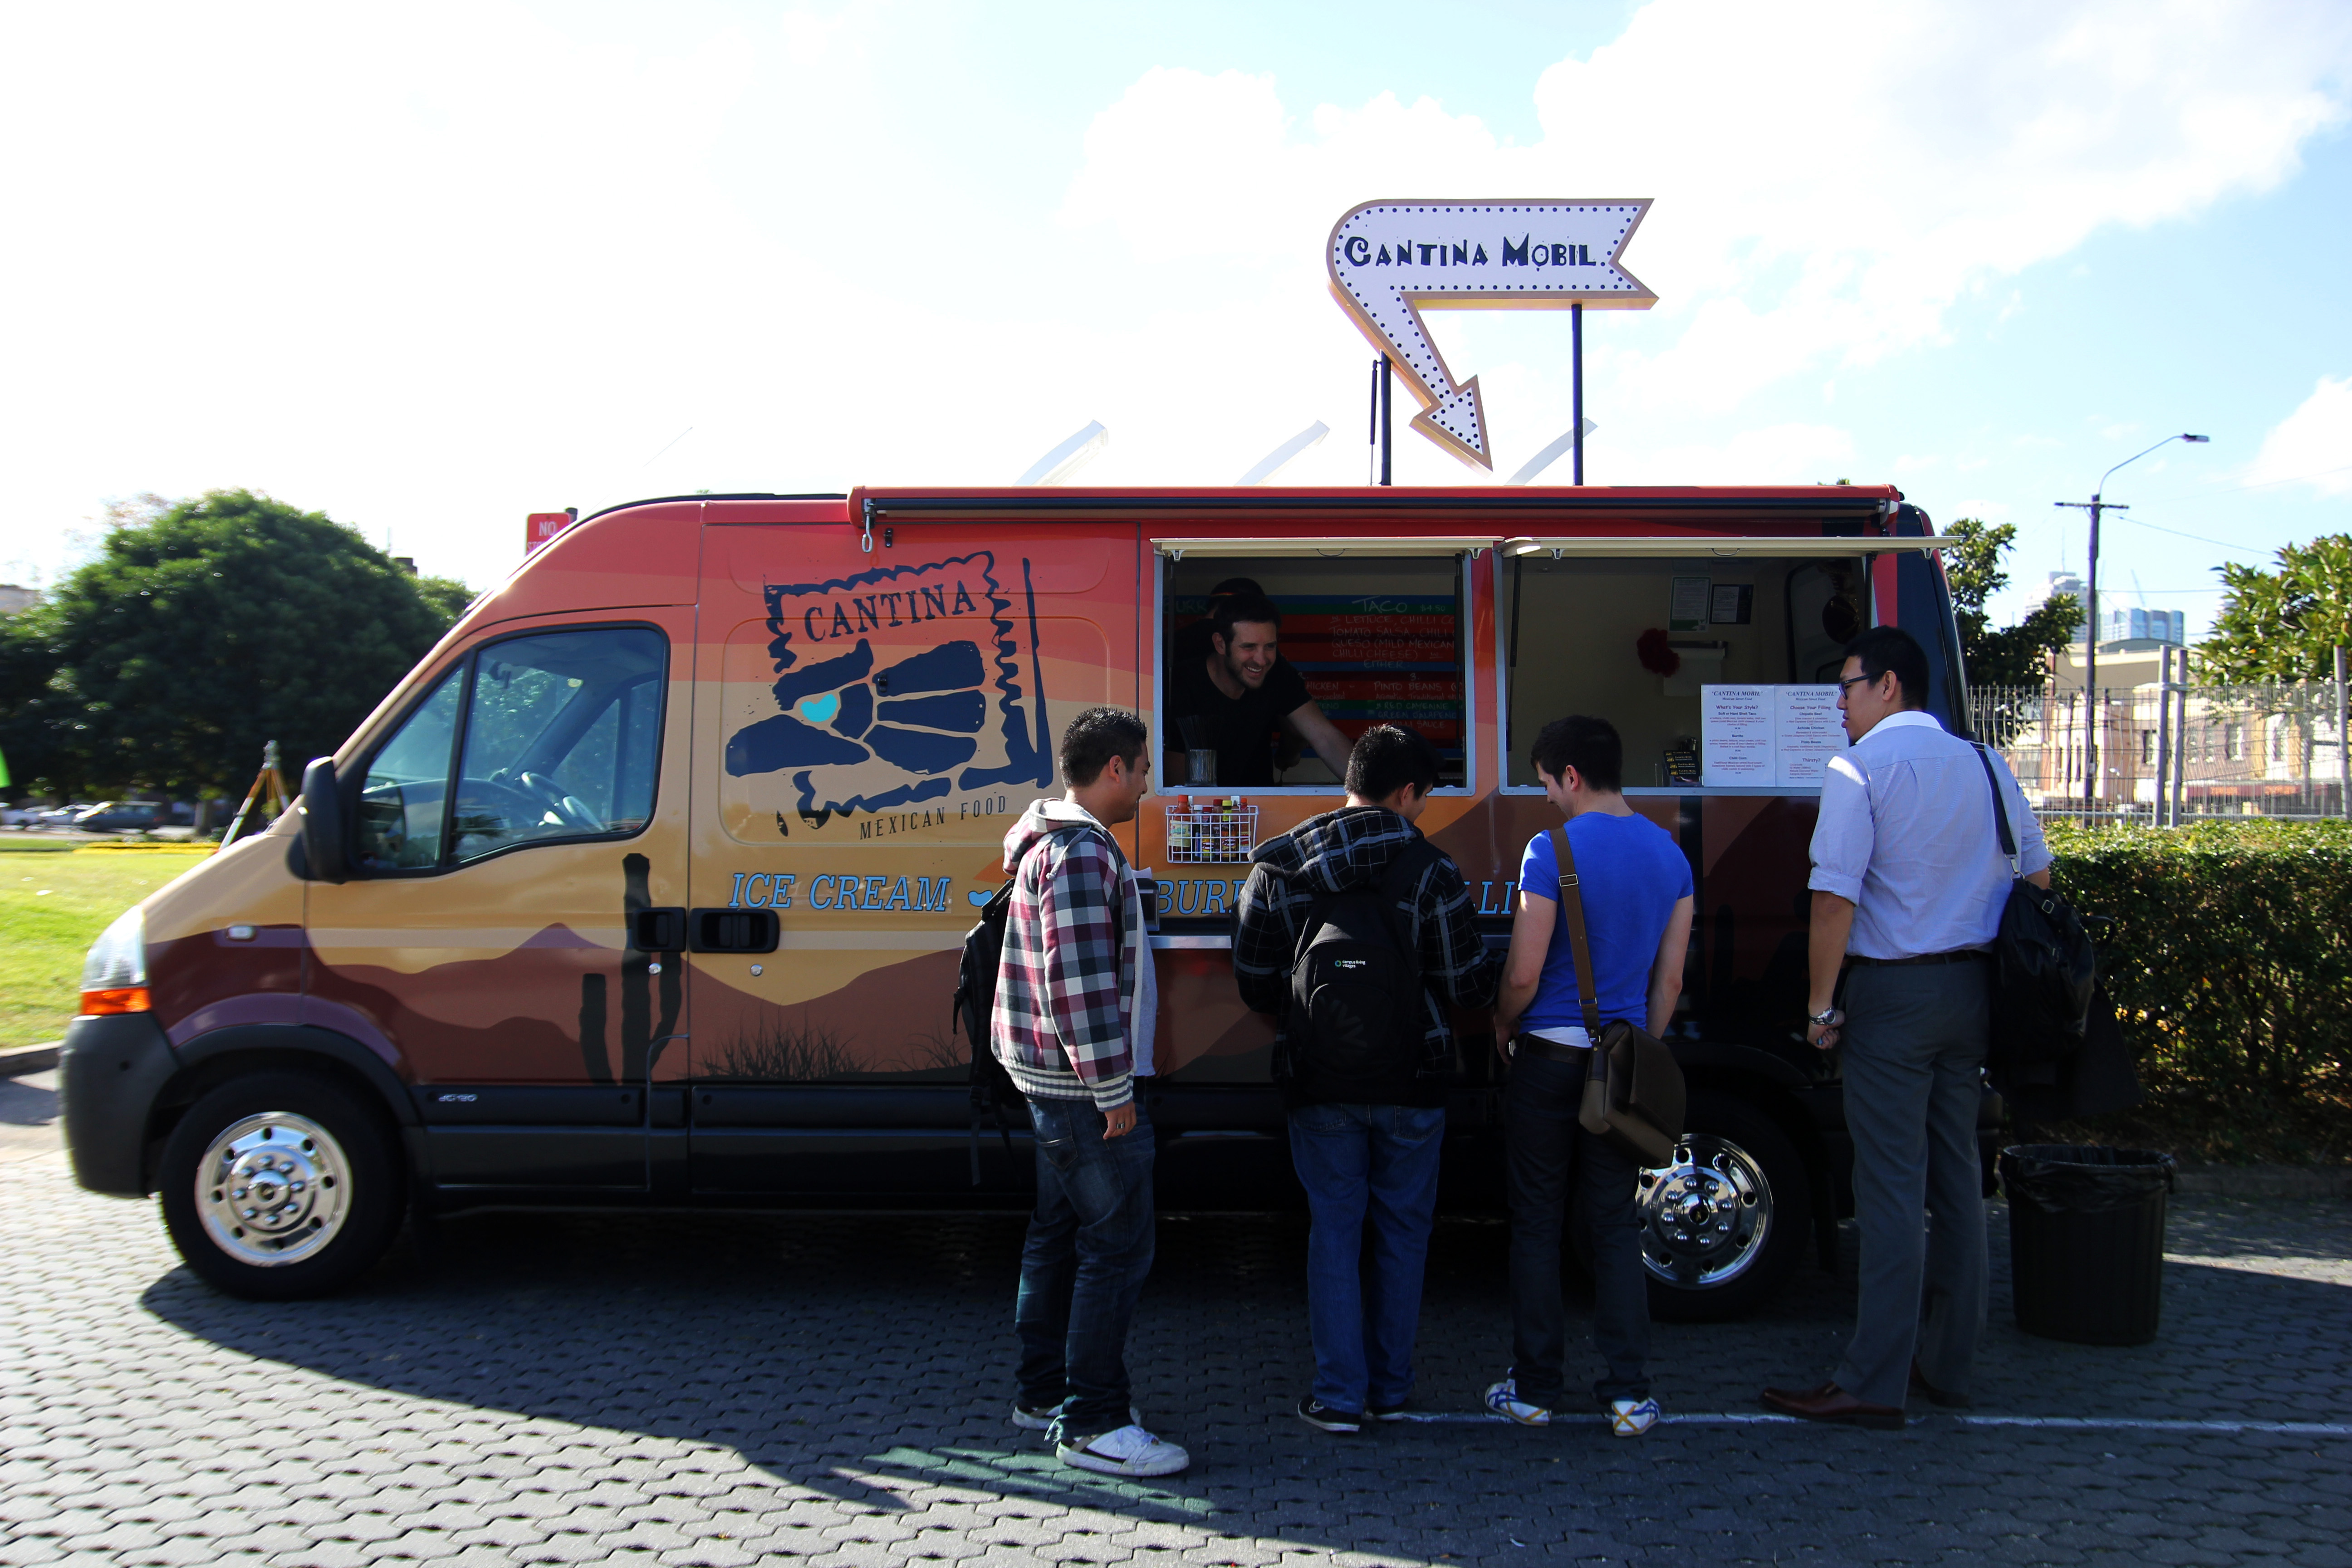 Food trucks to rev up numbers, fees